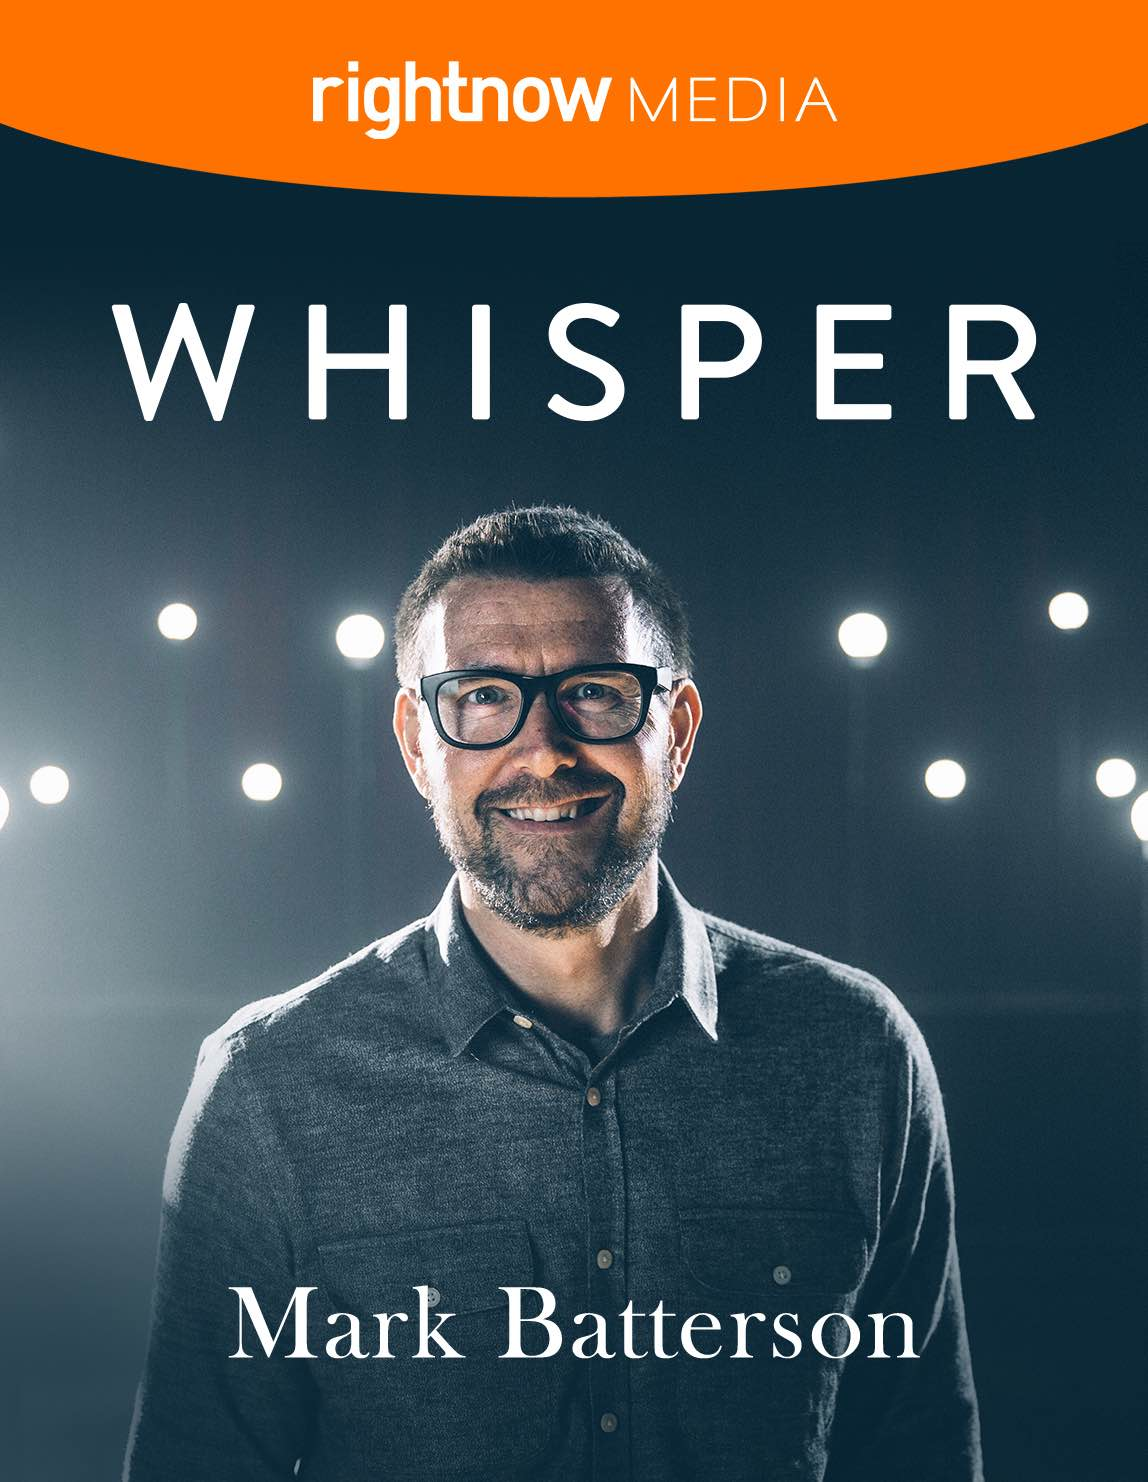 Whisper Mark Batterson Created By: RightNow Media Released: 2018